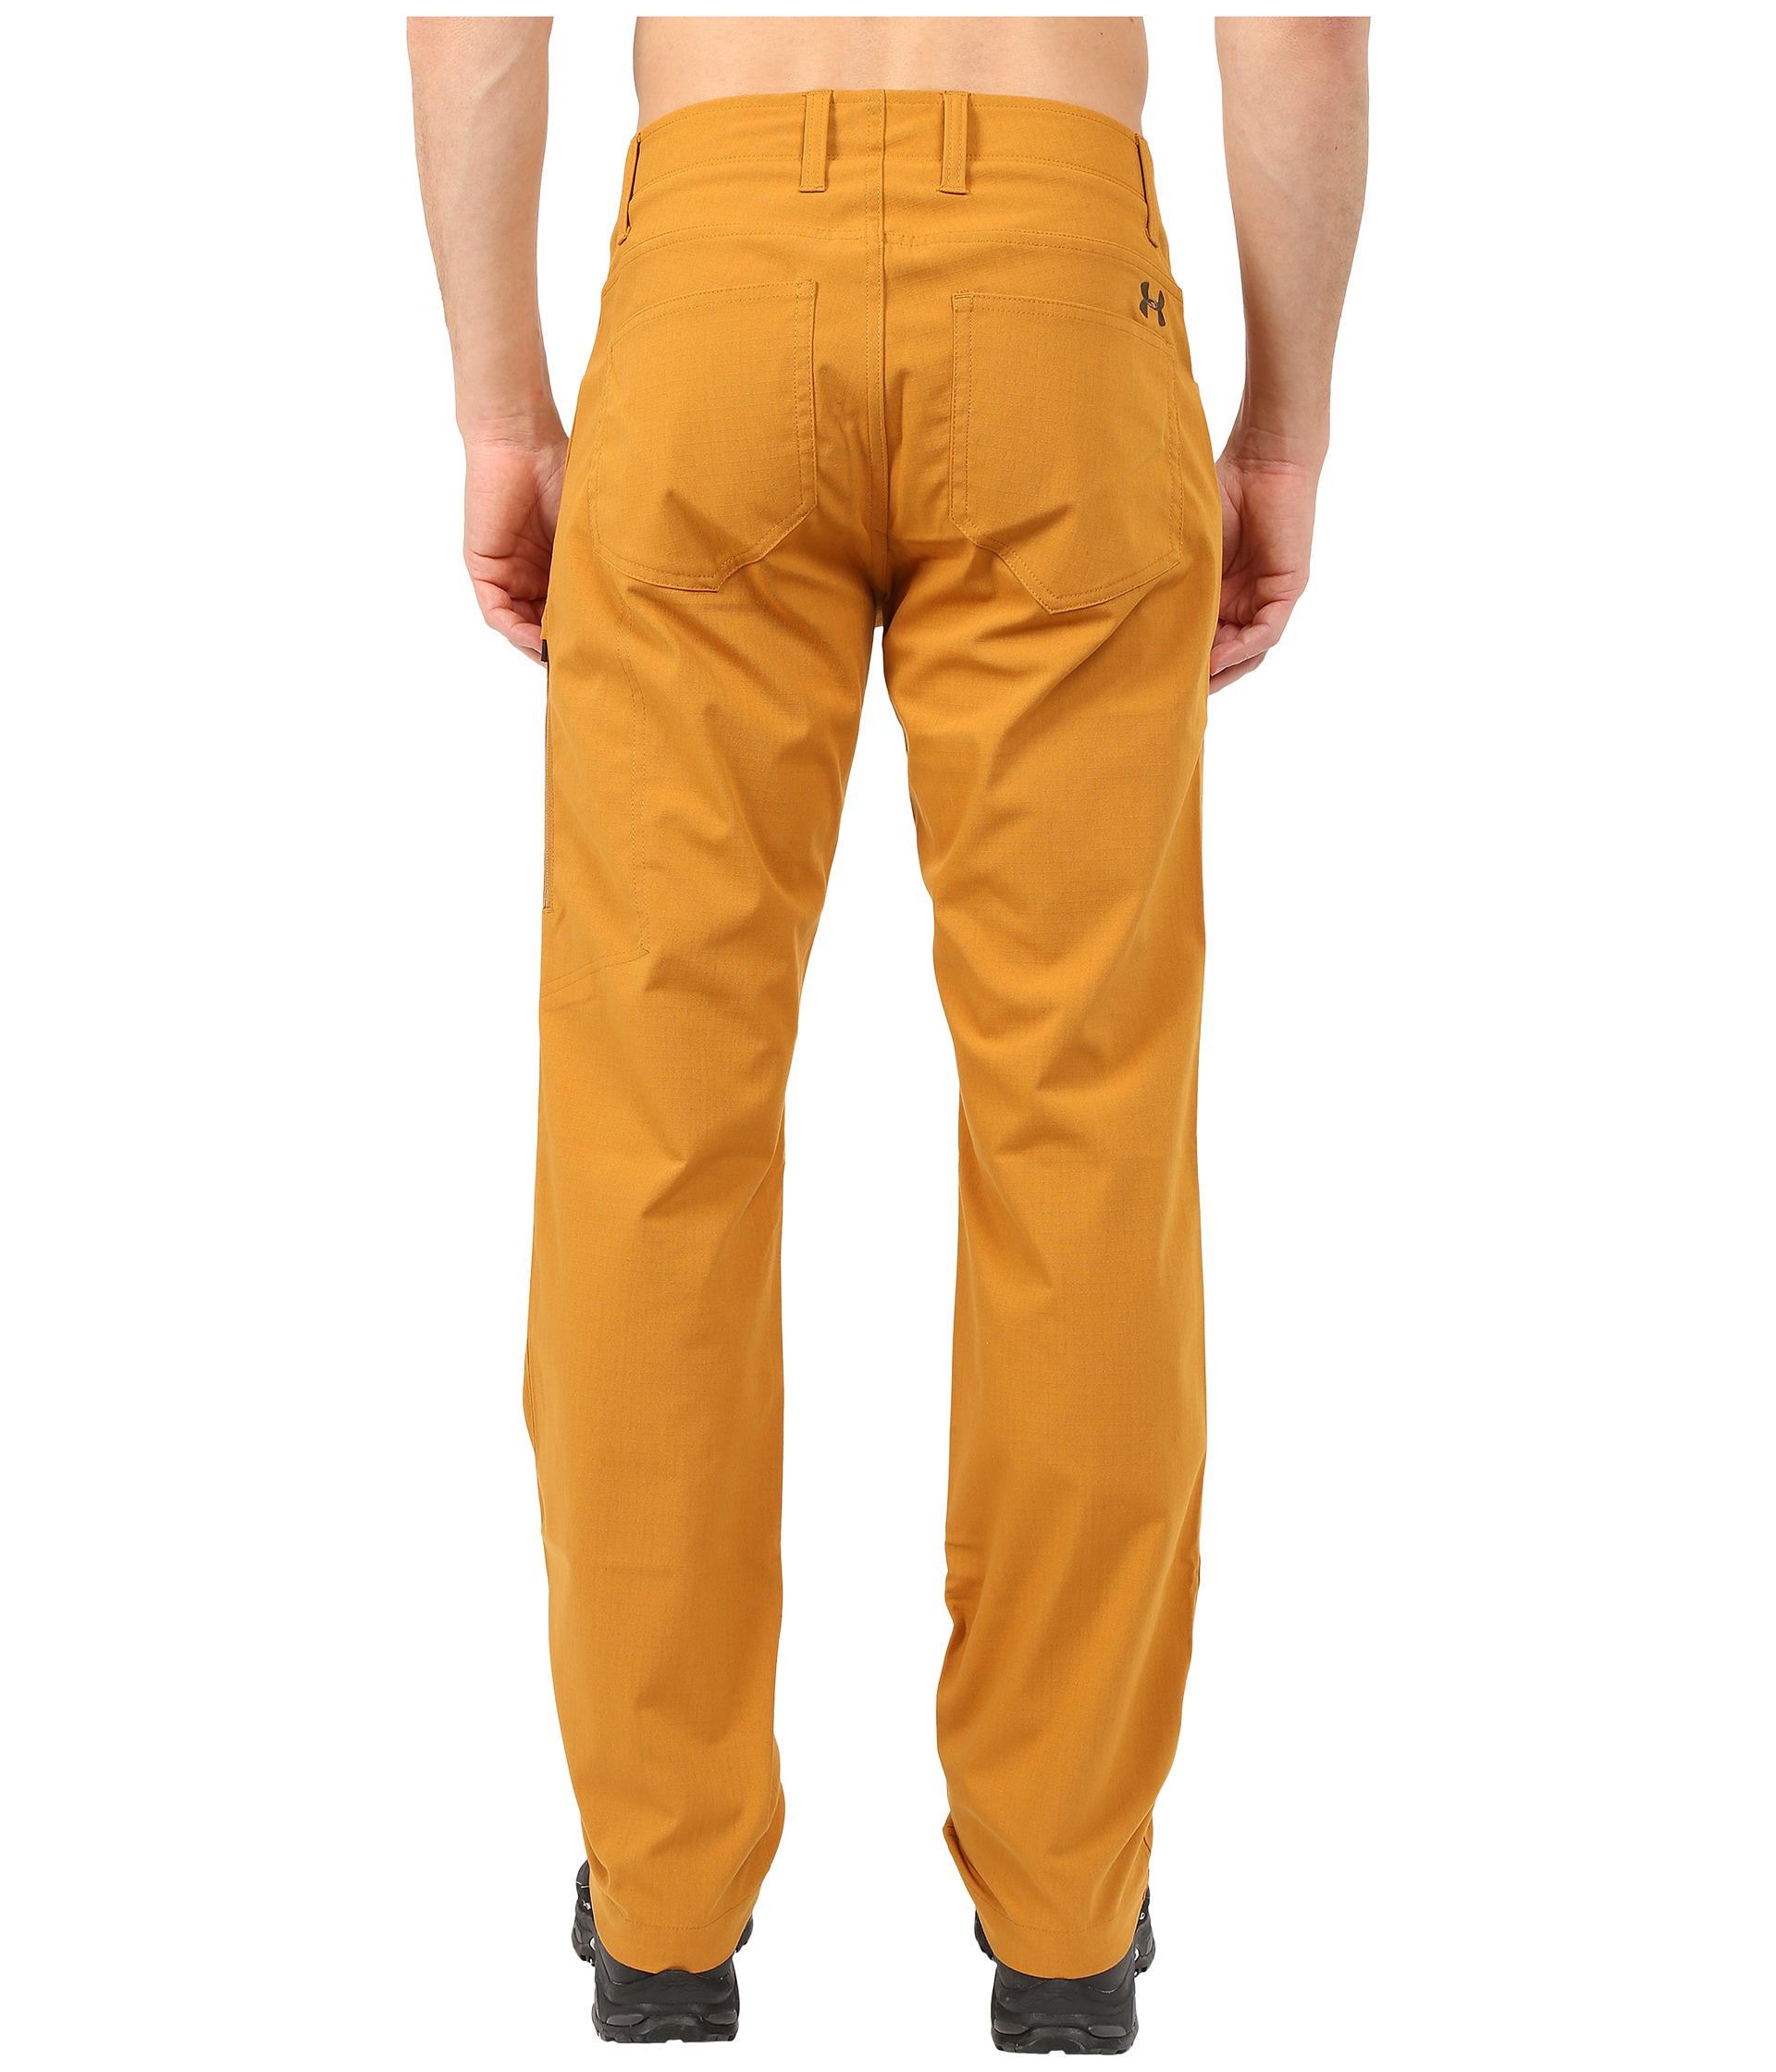 0b3f705d4edba Under Armour Storm Covert Pants in Yellow for Men - Lyst